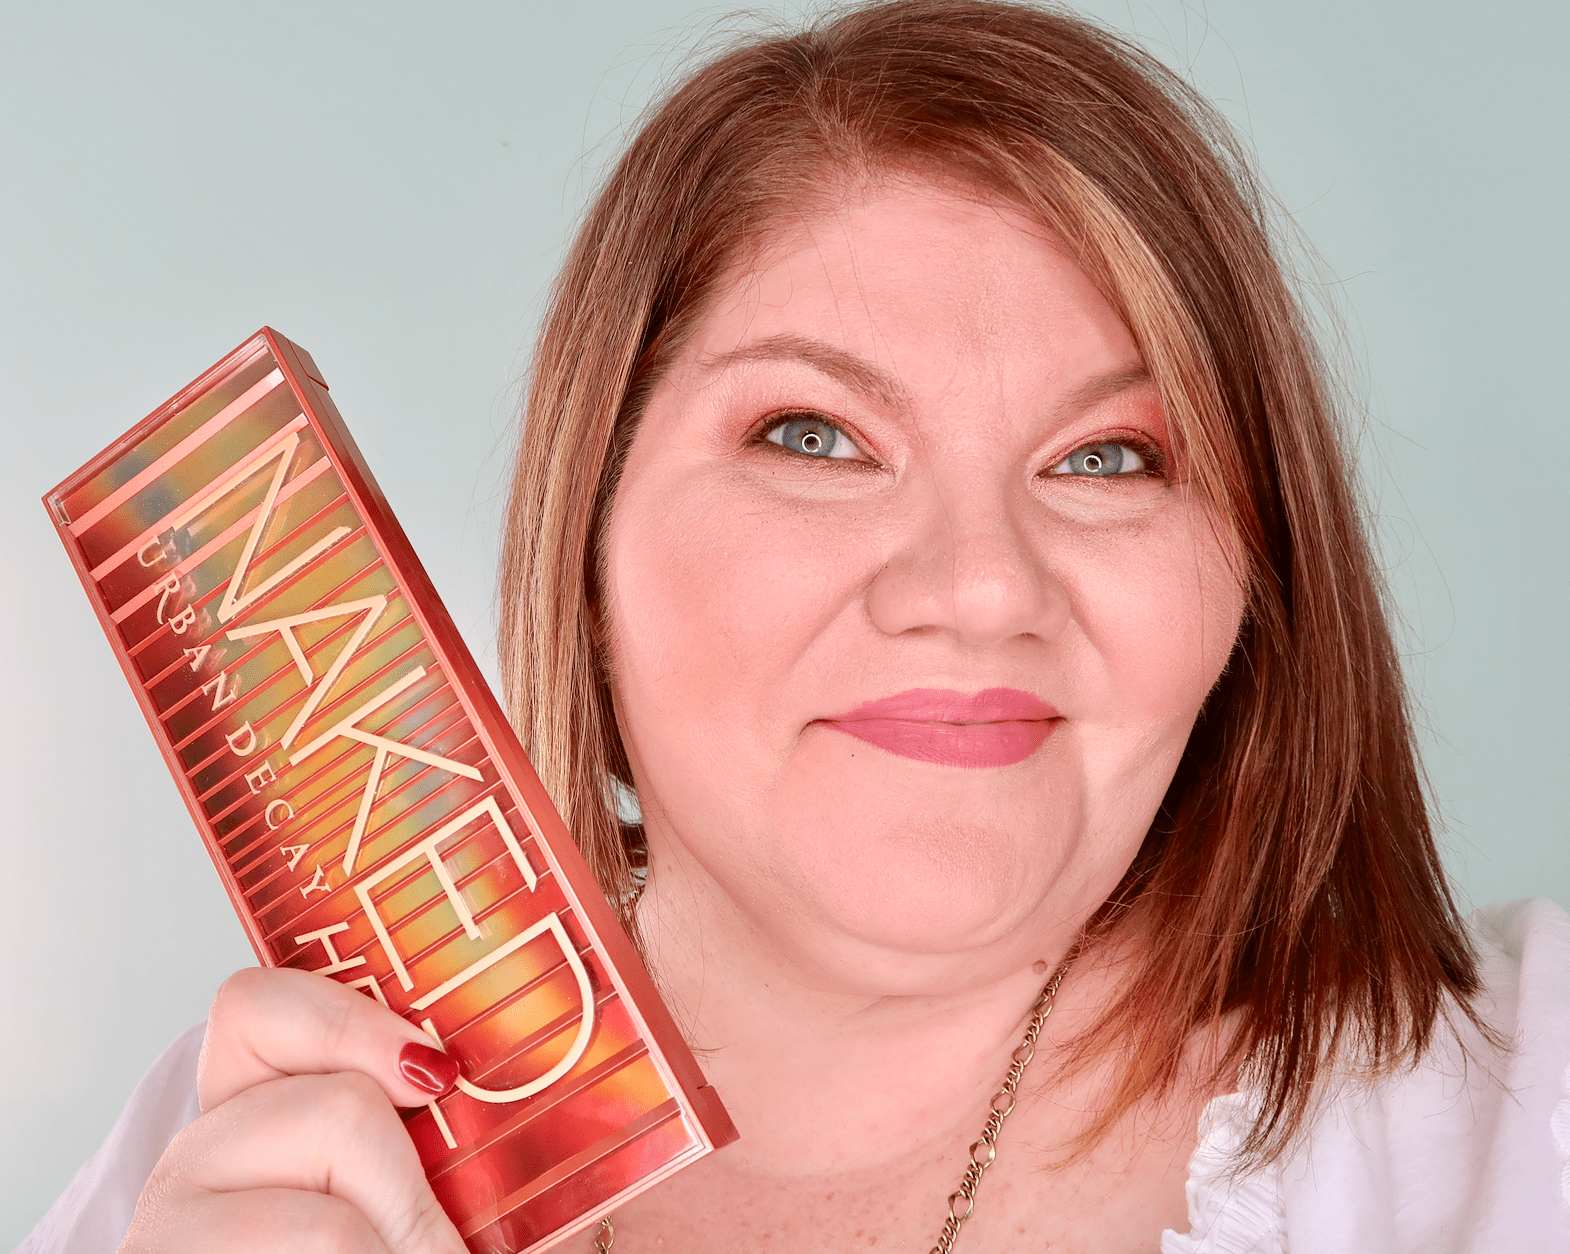 Day To Night Looks Featuring The Urban Decay Naked Heat Palette